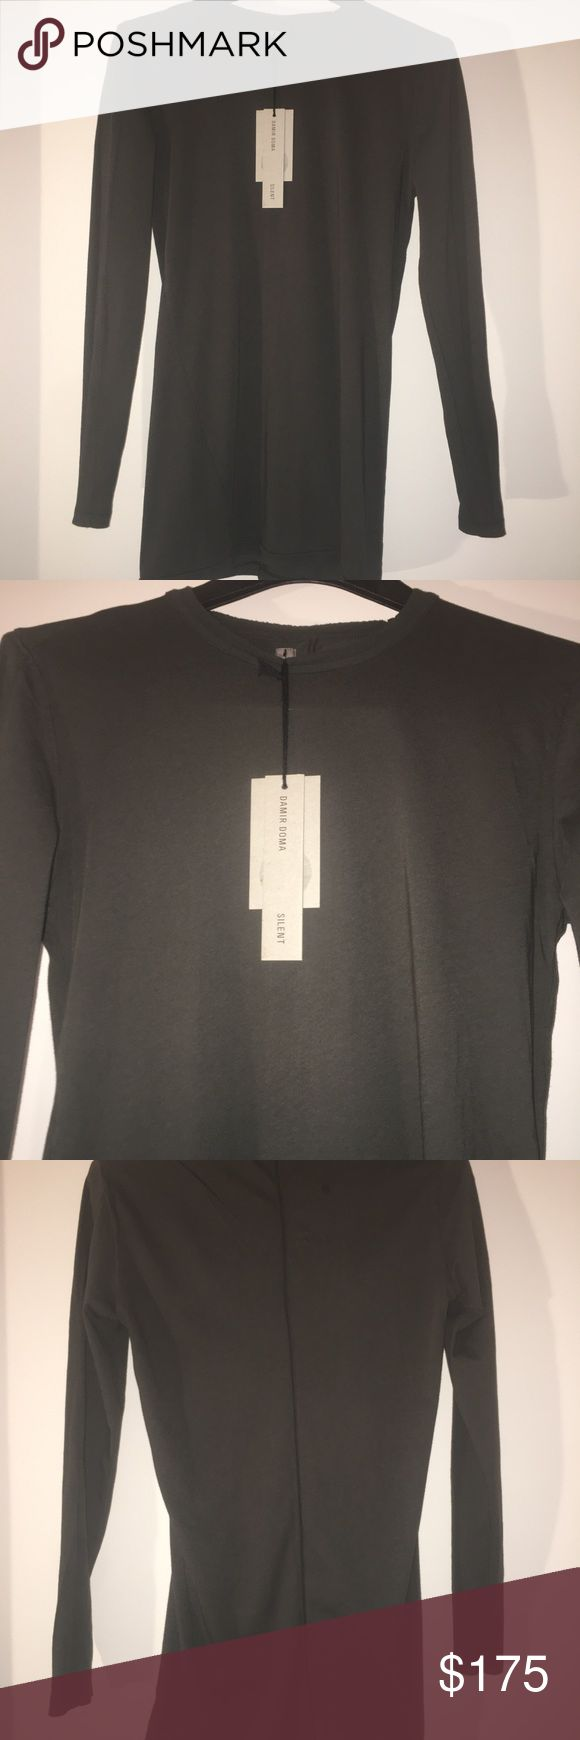 """Damir Doma silent men's t shirt , size -Xs Brand new Damir Doma Silent T-shirt with a long sleeves . Size -Xs. Color -khaki. Made in Portugal .100% cotton. Shirt fit very tight ( it's a style ) , included tag . Armpit to armpit -17"""". Length -29""""( from the middle of the shoulder down ). Sleeve length -25"""". All measurements were taken in the front without stretching the material .Please do not hesitate to ask questions or additional photos . Thank you Damir Doma Shirts Tees - Long Sleeve"""